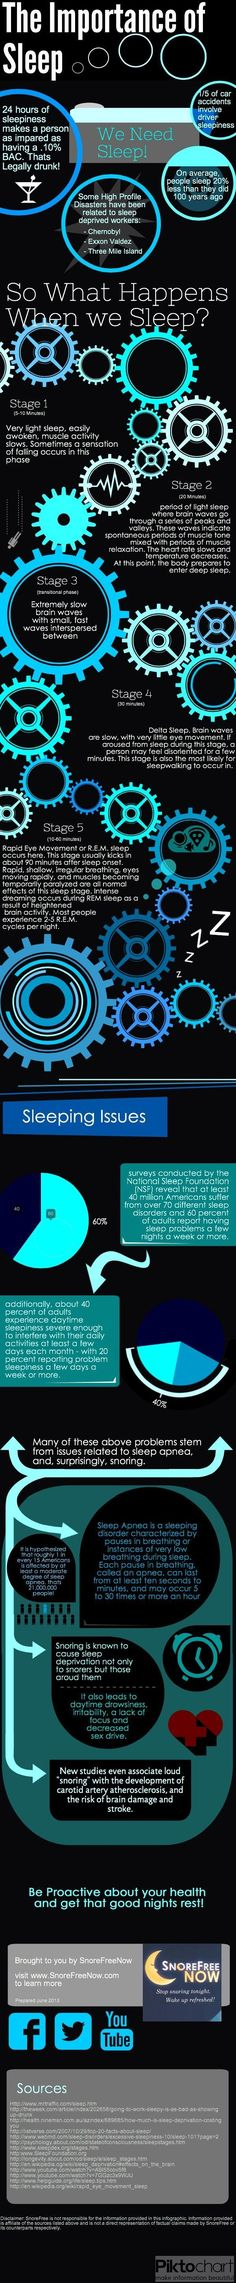 This pin shows how important is to sleep, it give some reasons on why it is important.